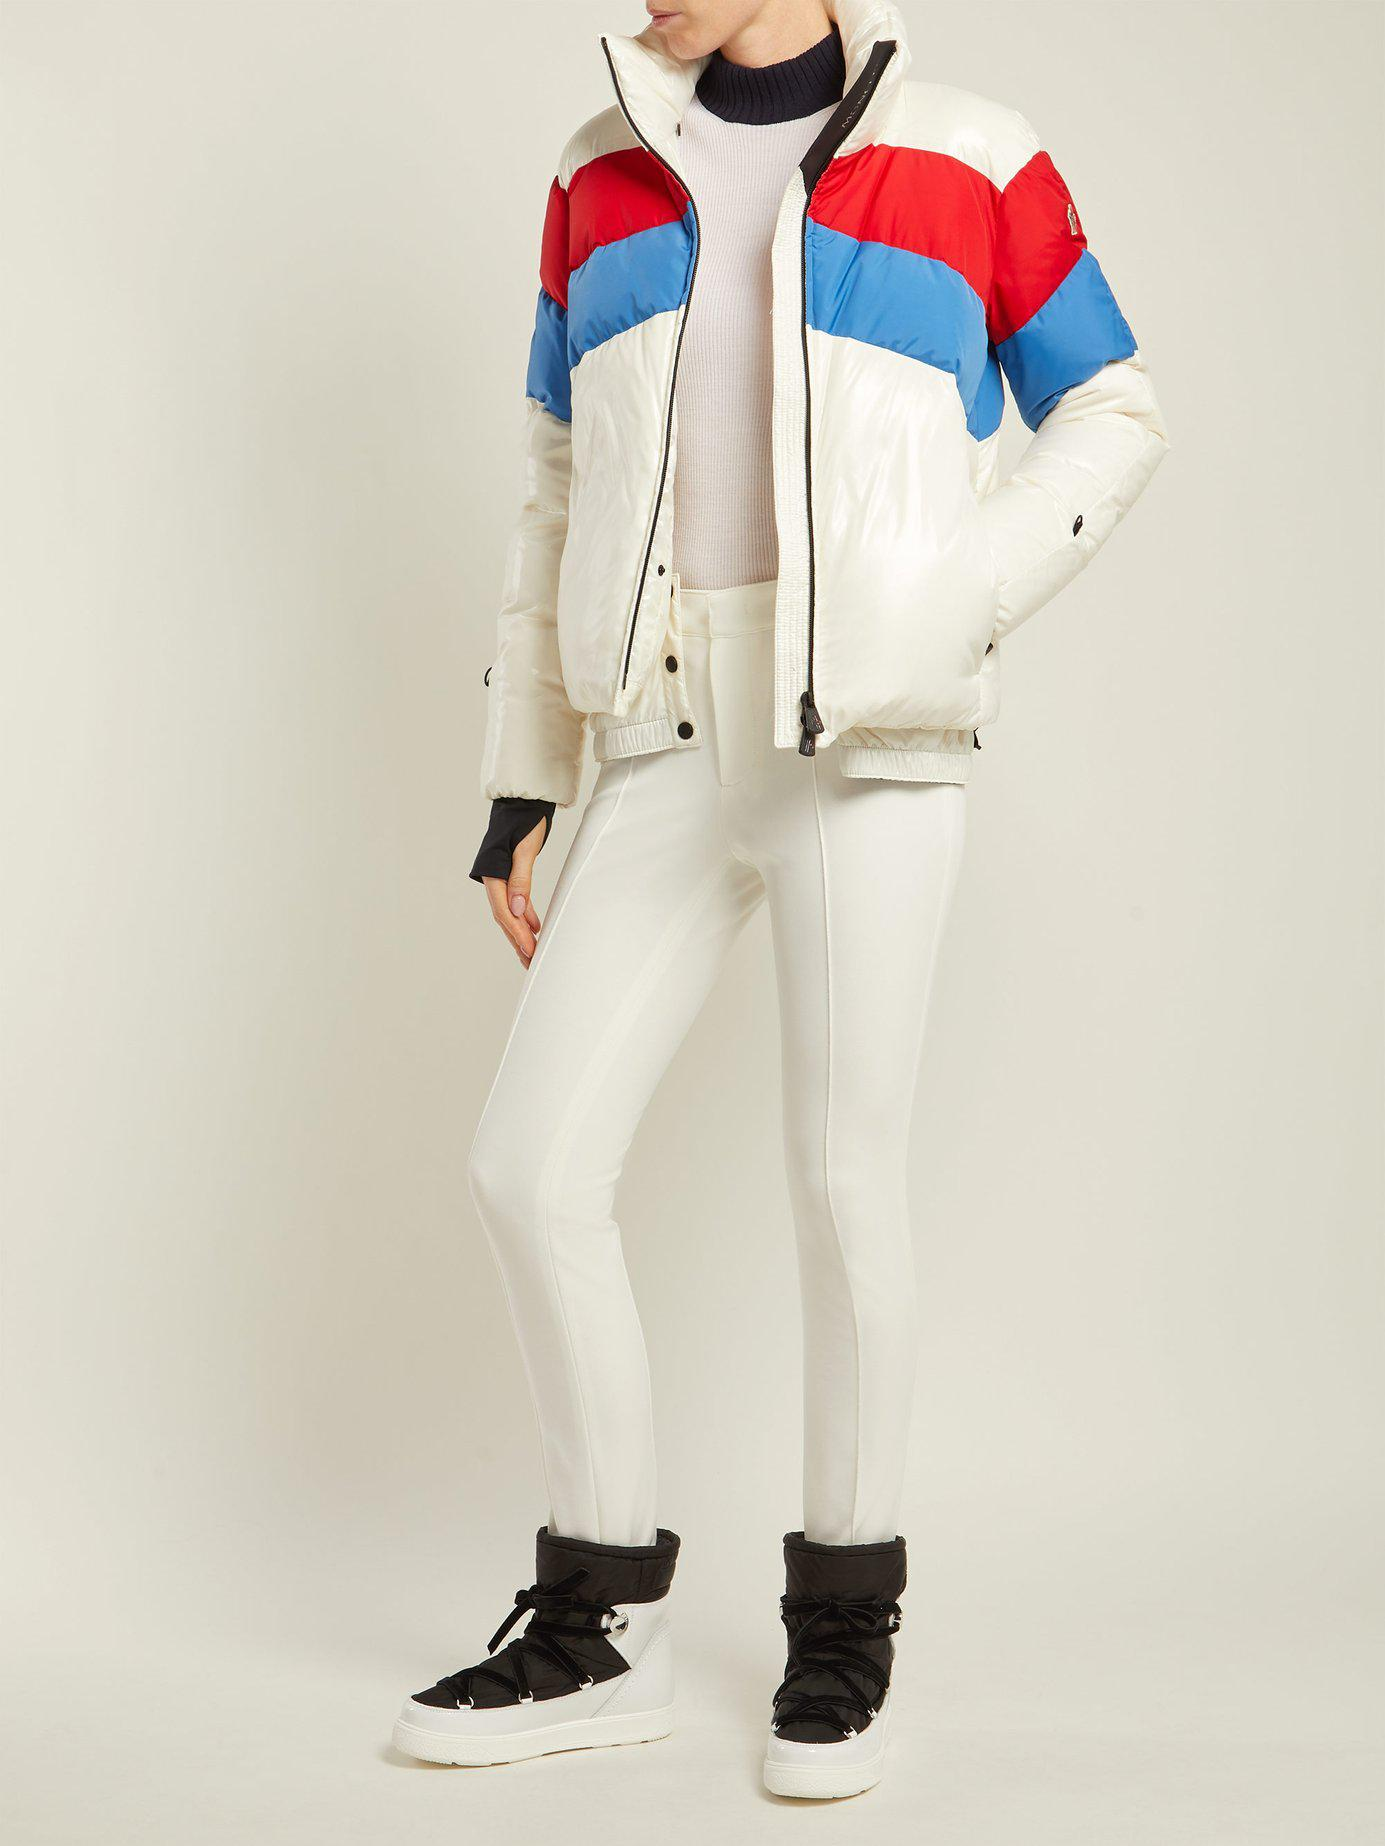 43a5cc512 Moncler Grenoble Lamar Down Filled Ski Jacket in White - Lyst